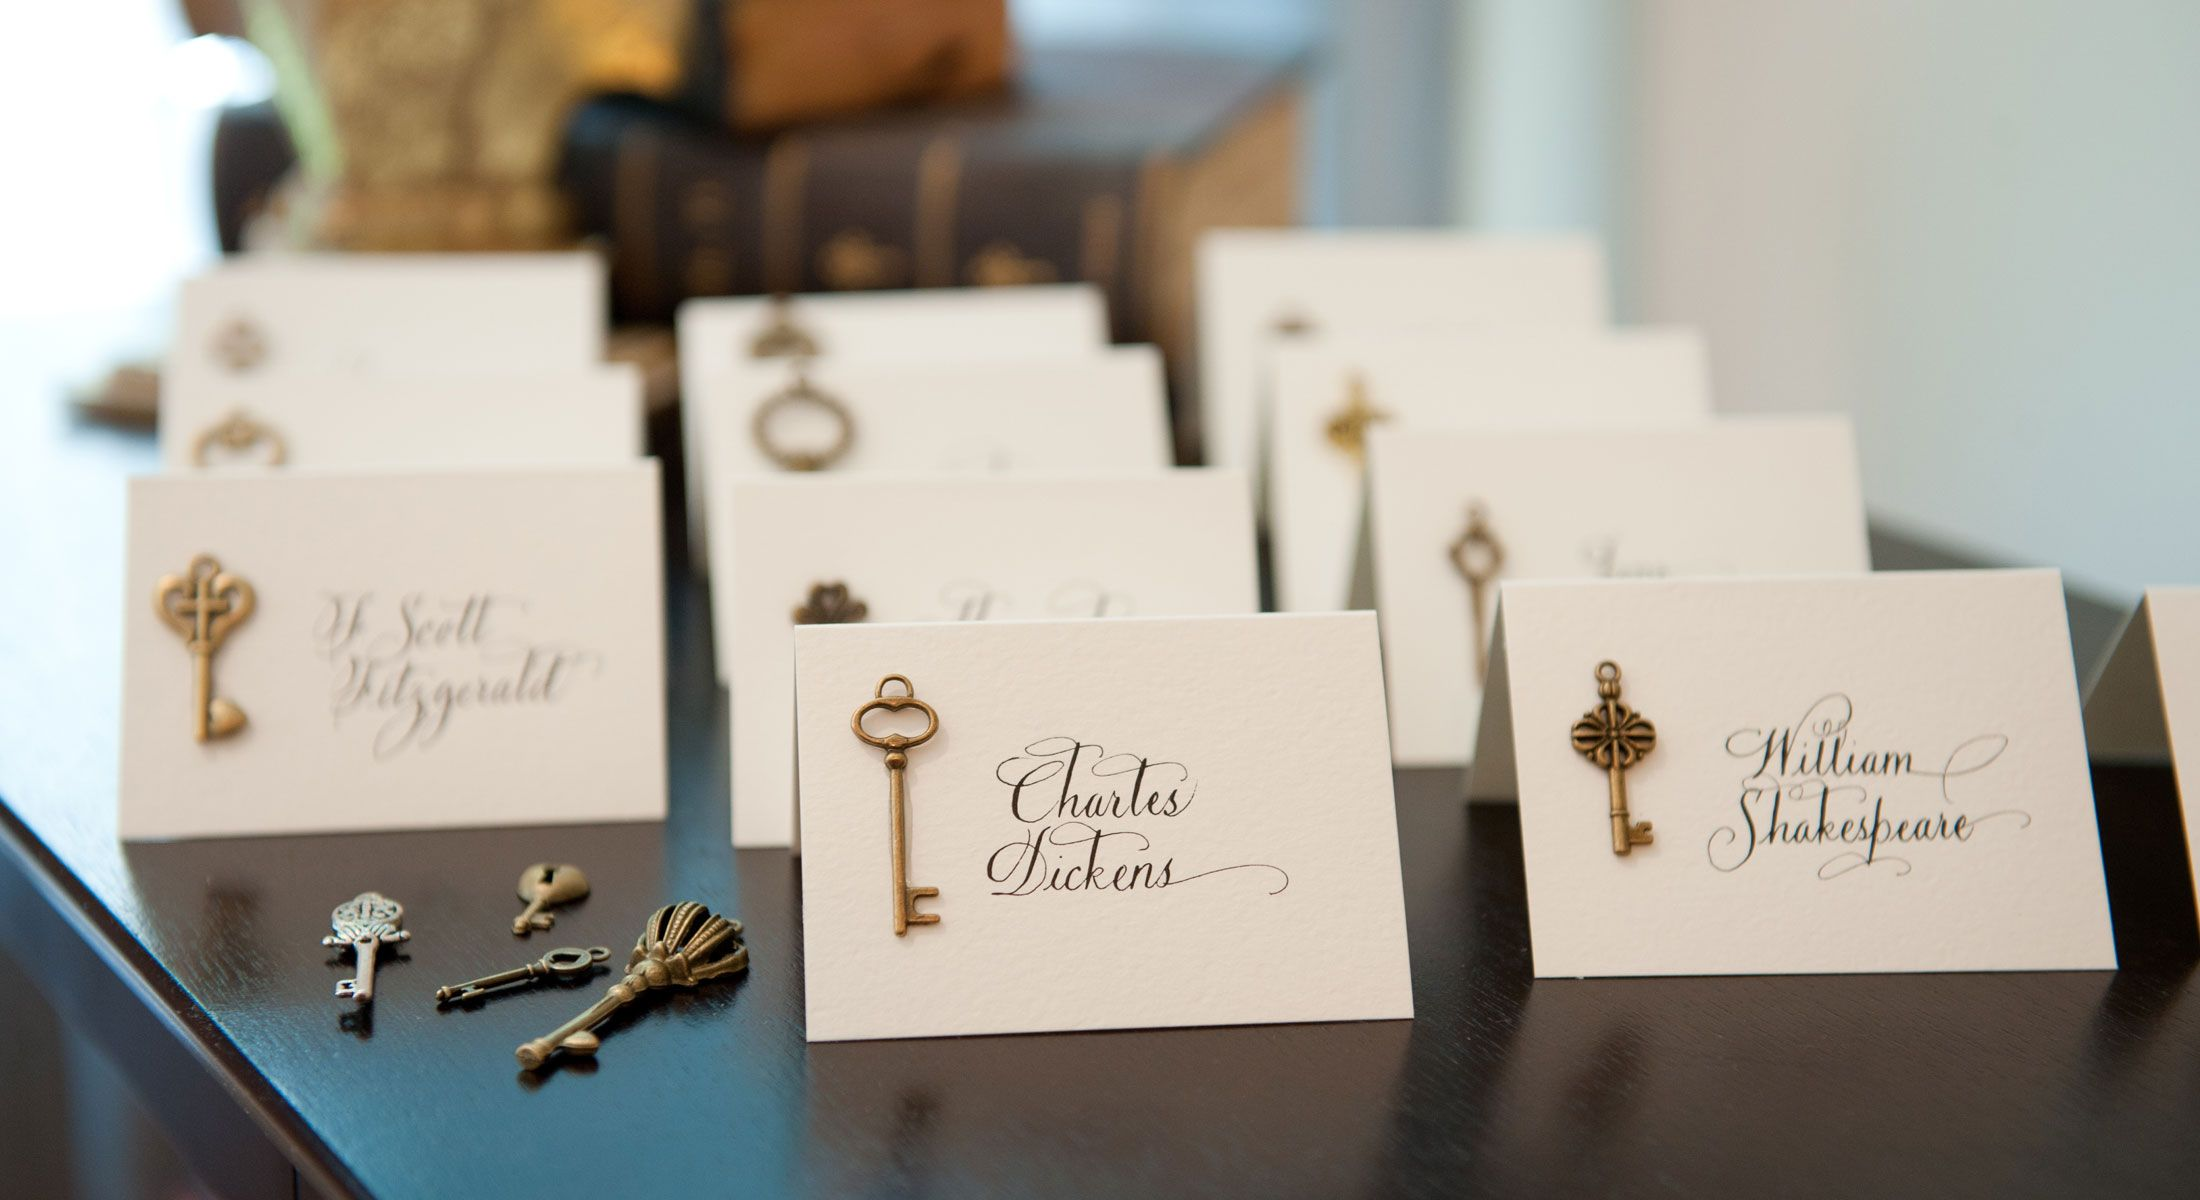 key placecards  jan boyd calligraphy  place card table